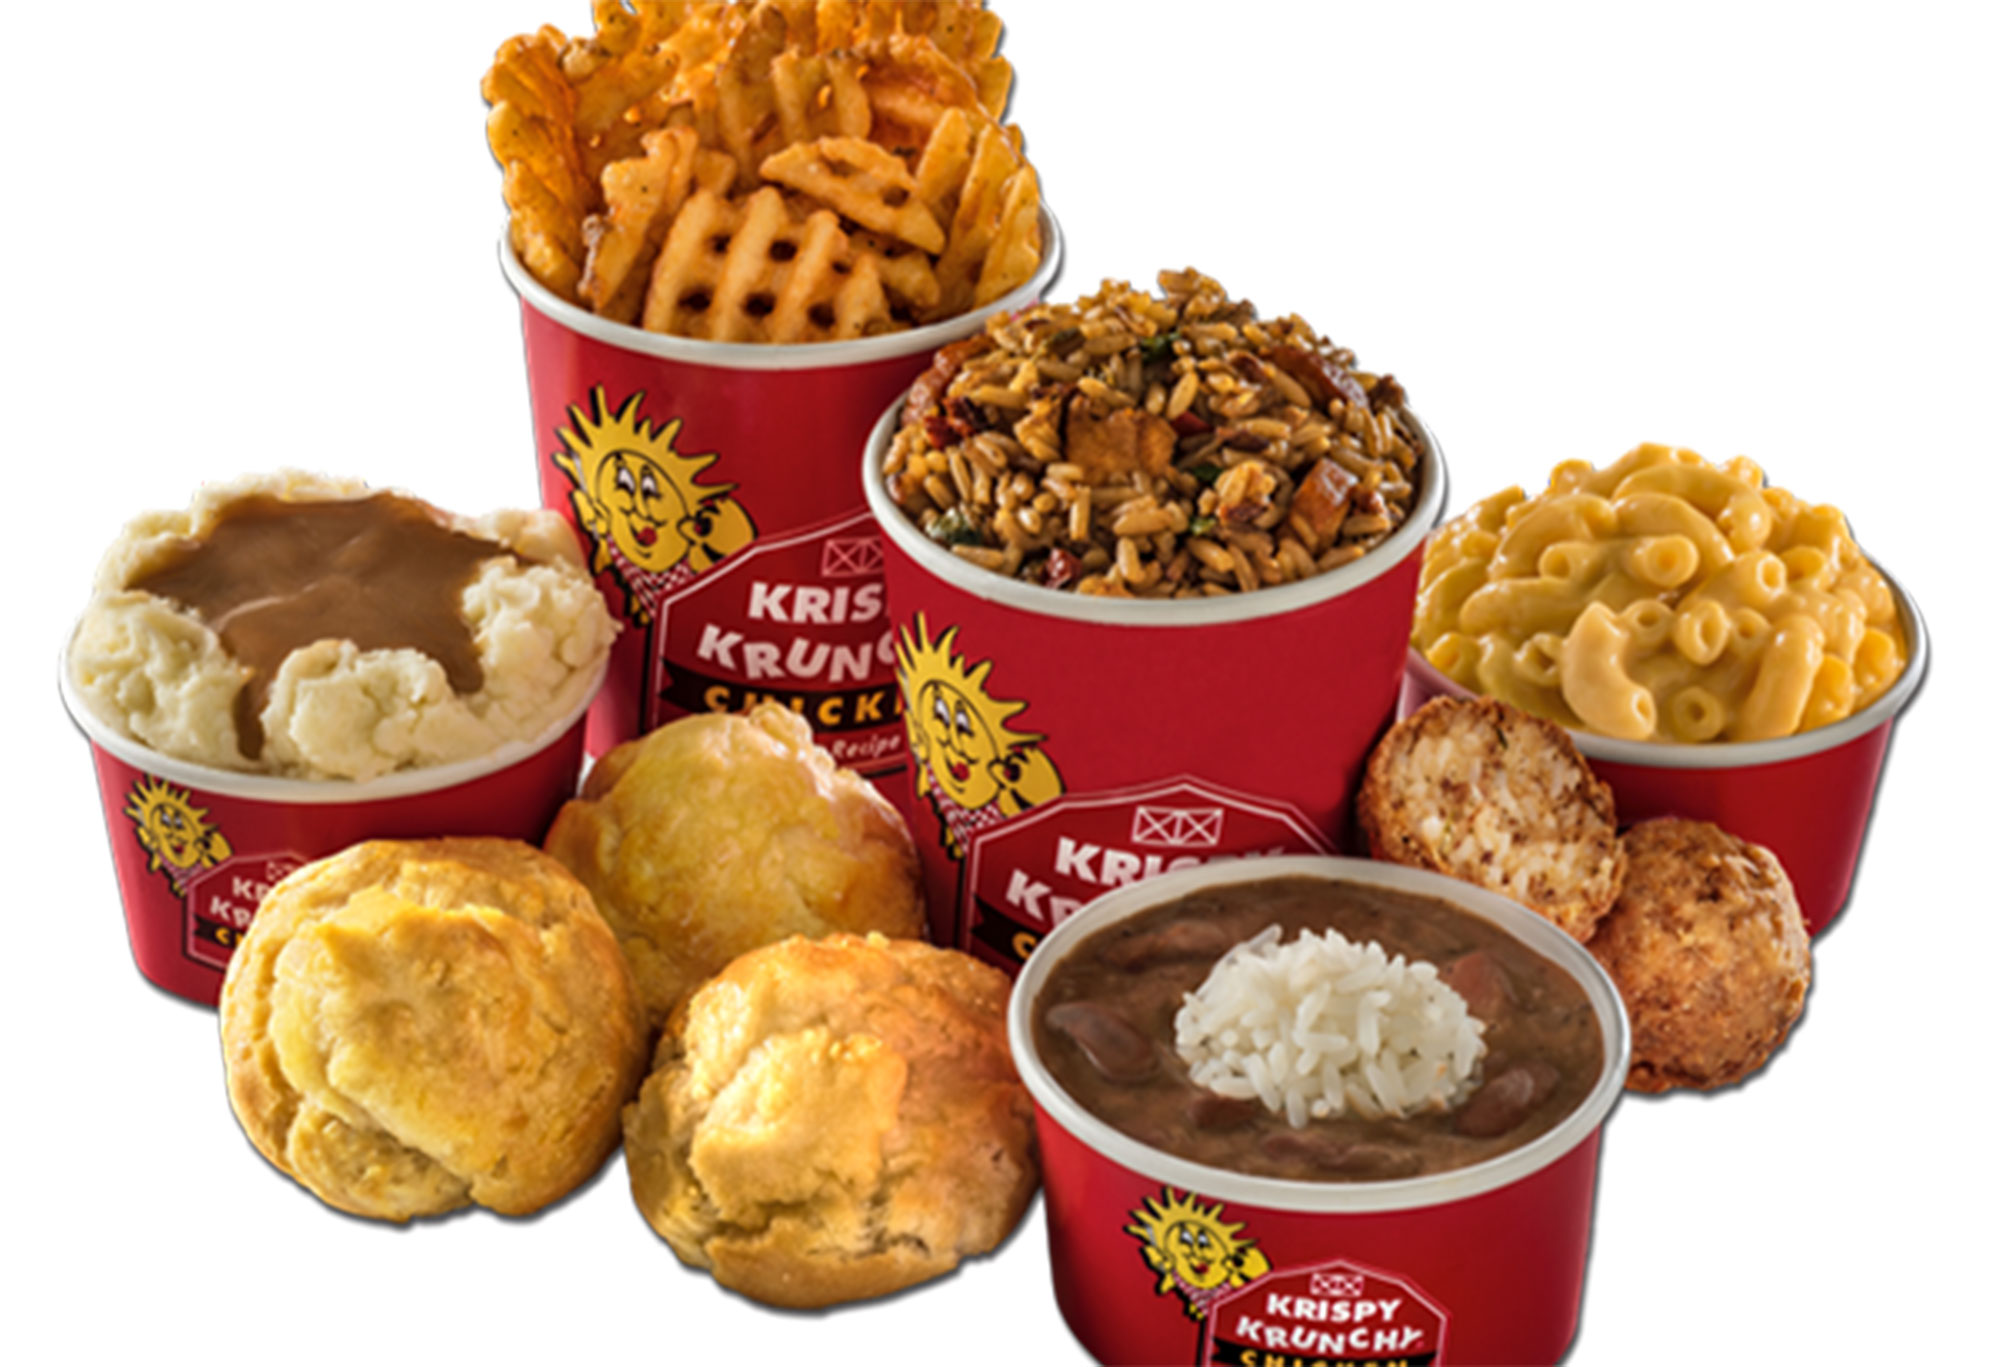 Krispy Krunchy Chicken sides include black beans and rice, honey biscuits, mashed potatoes, macaroni and cheese and fries. Courtesy photo.